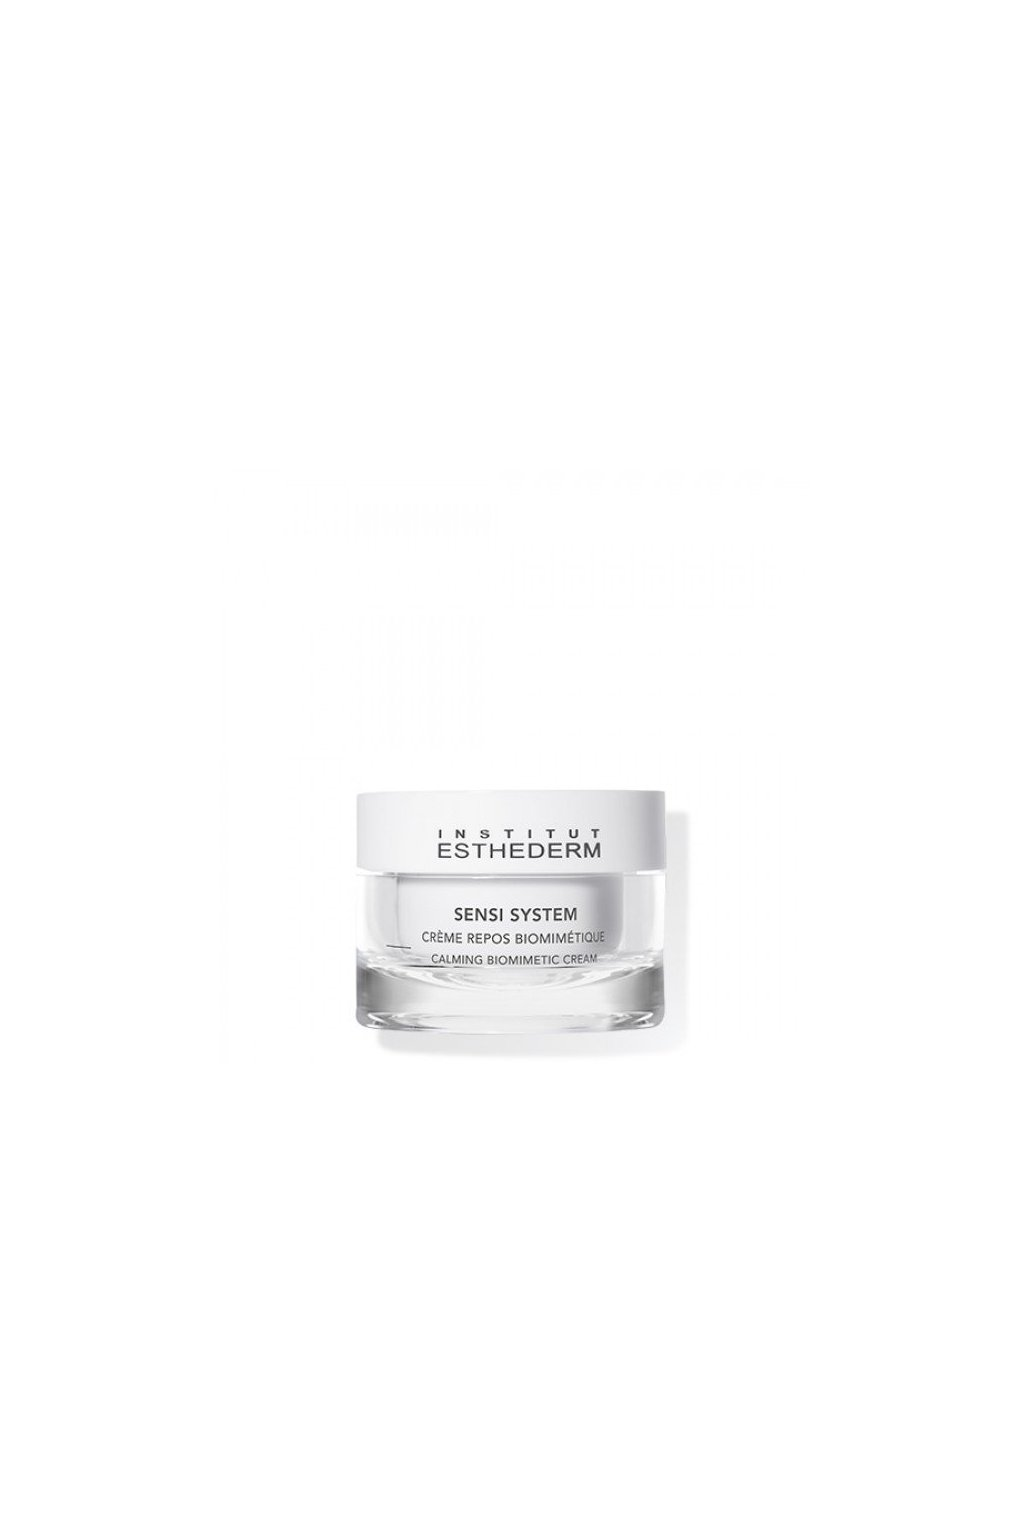 CALMING BIOMIMETIC CREAM 50 ml